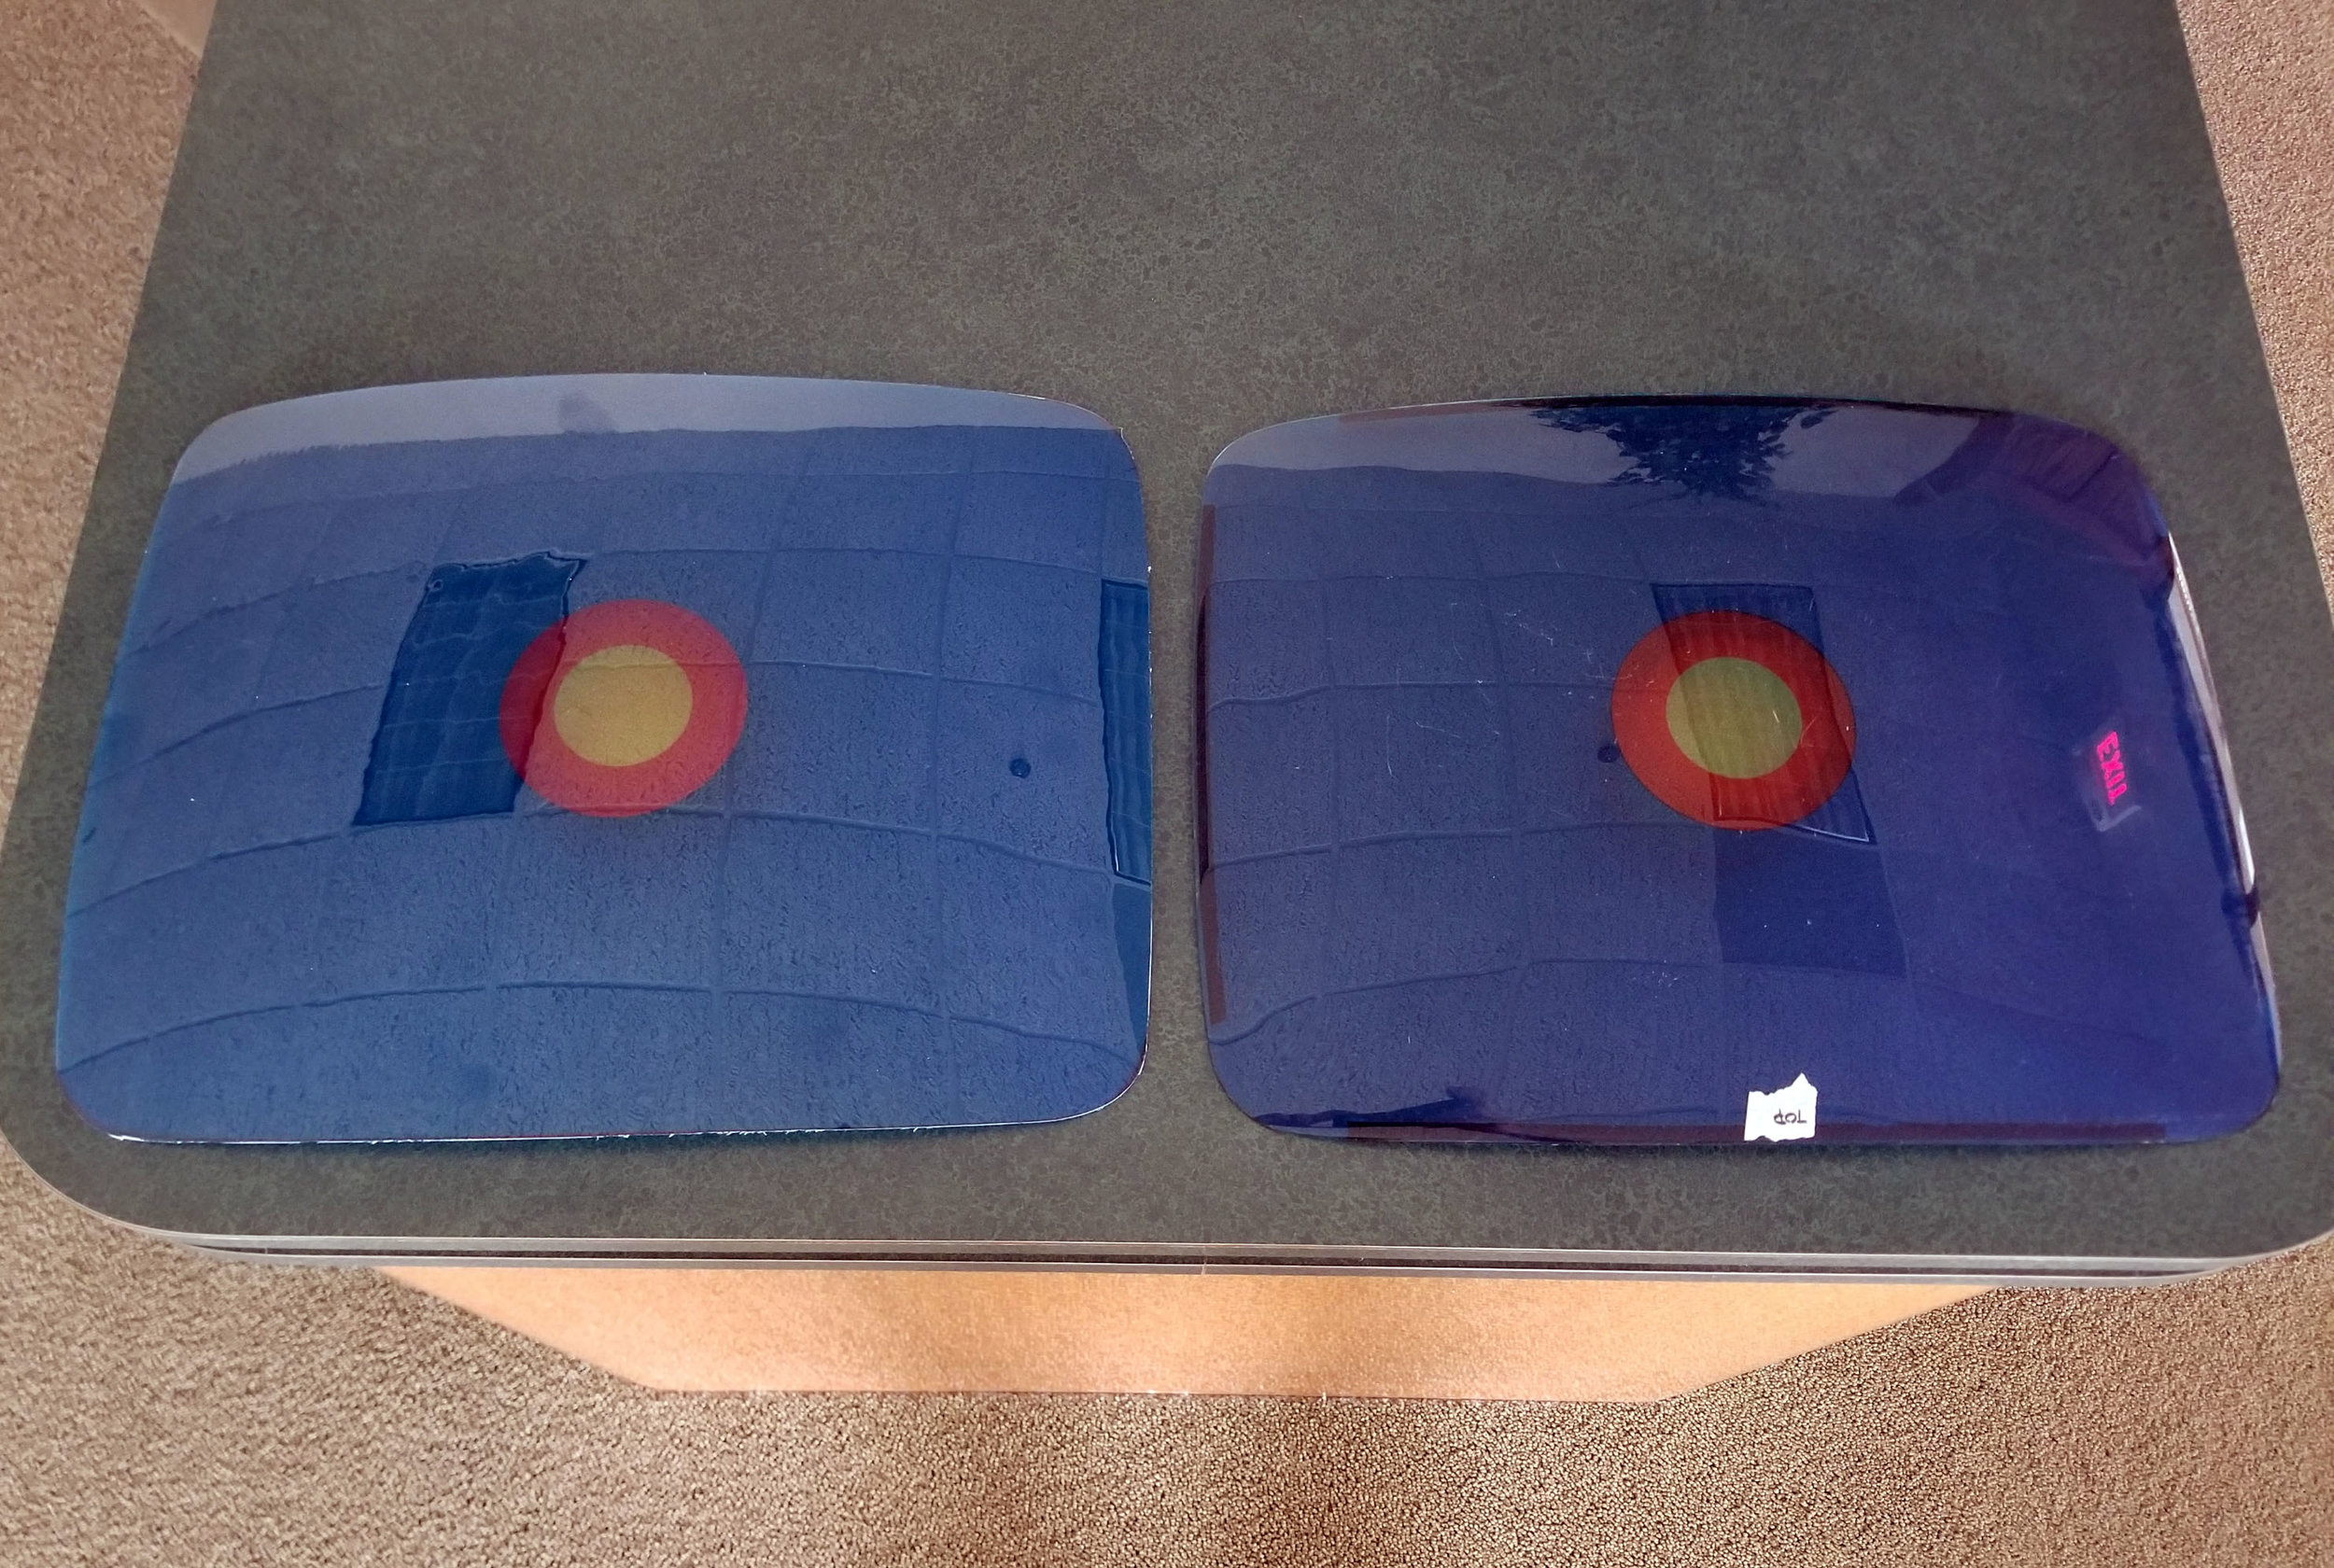 A sample reproduction overlay is on the left, original is on the right. This sample was digitally printed, while the final version will be colored matched and use high quality automotive inks. Also, the edges here were rough cut, whereas the final version will be routed and smoothed.